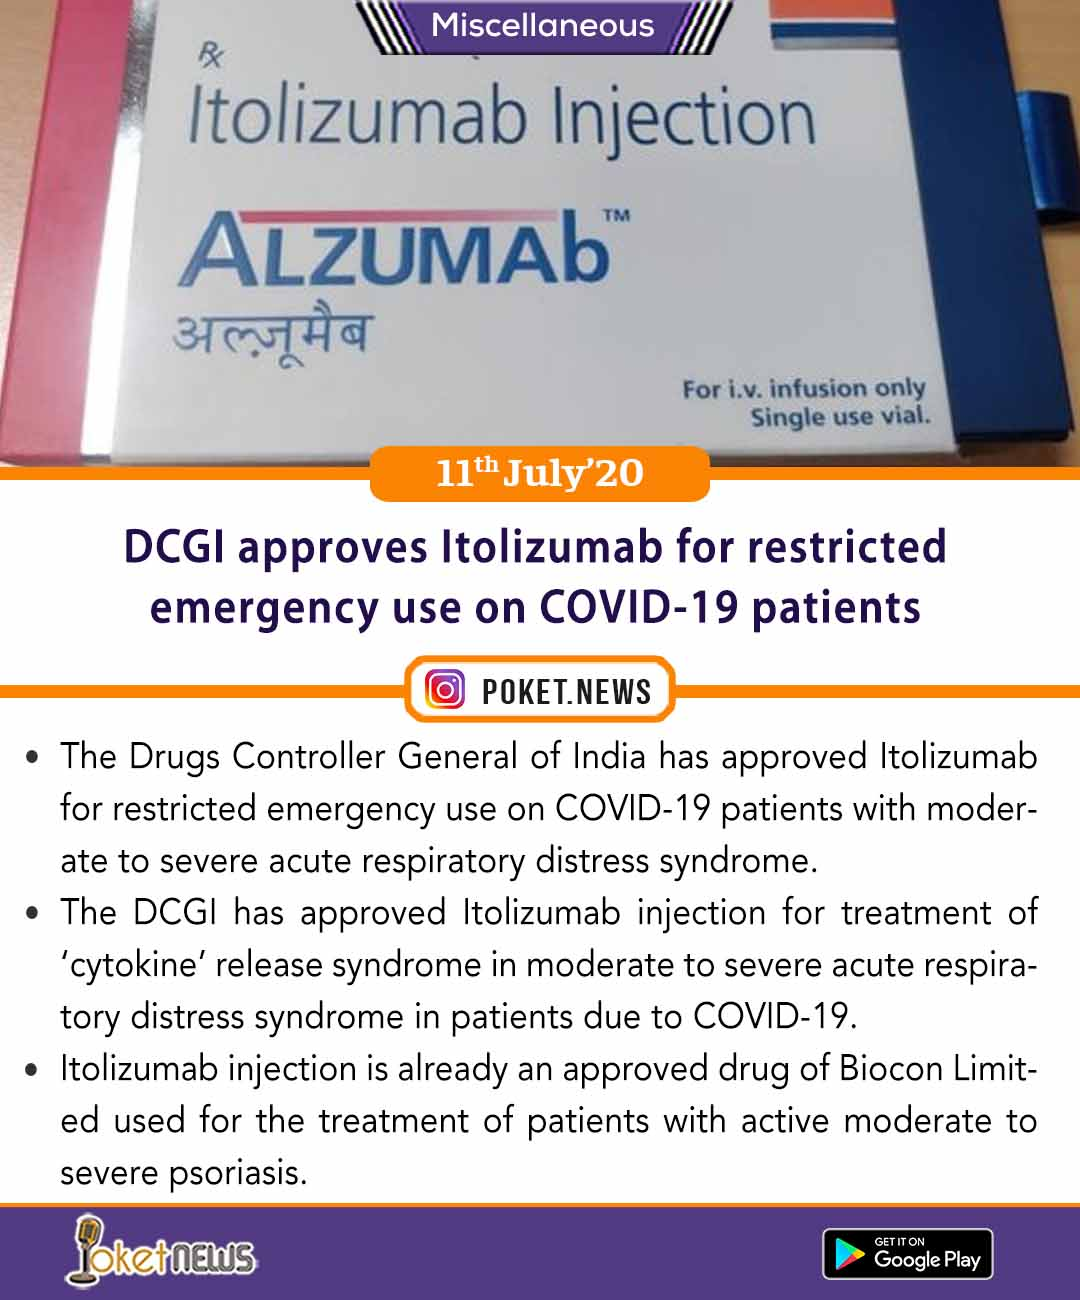 DCGI approves Itolizumab for restricted emergency use on COVID-19 patients